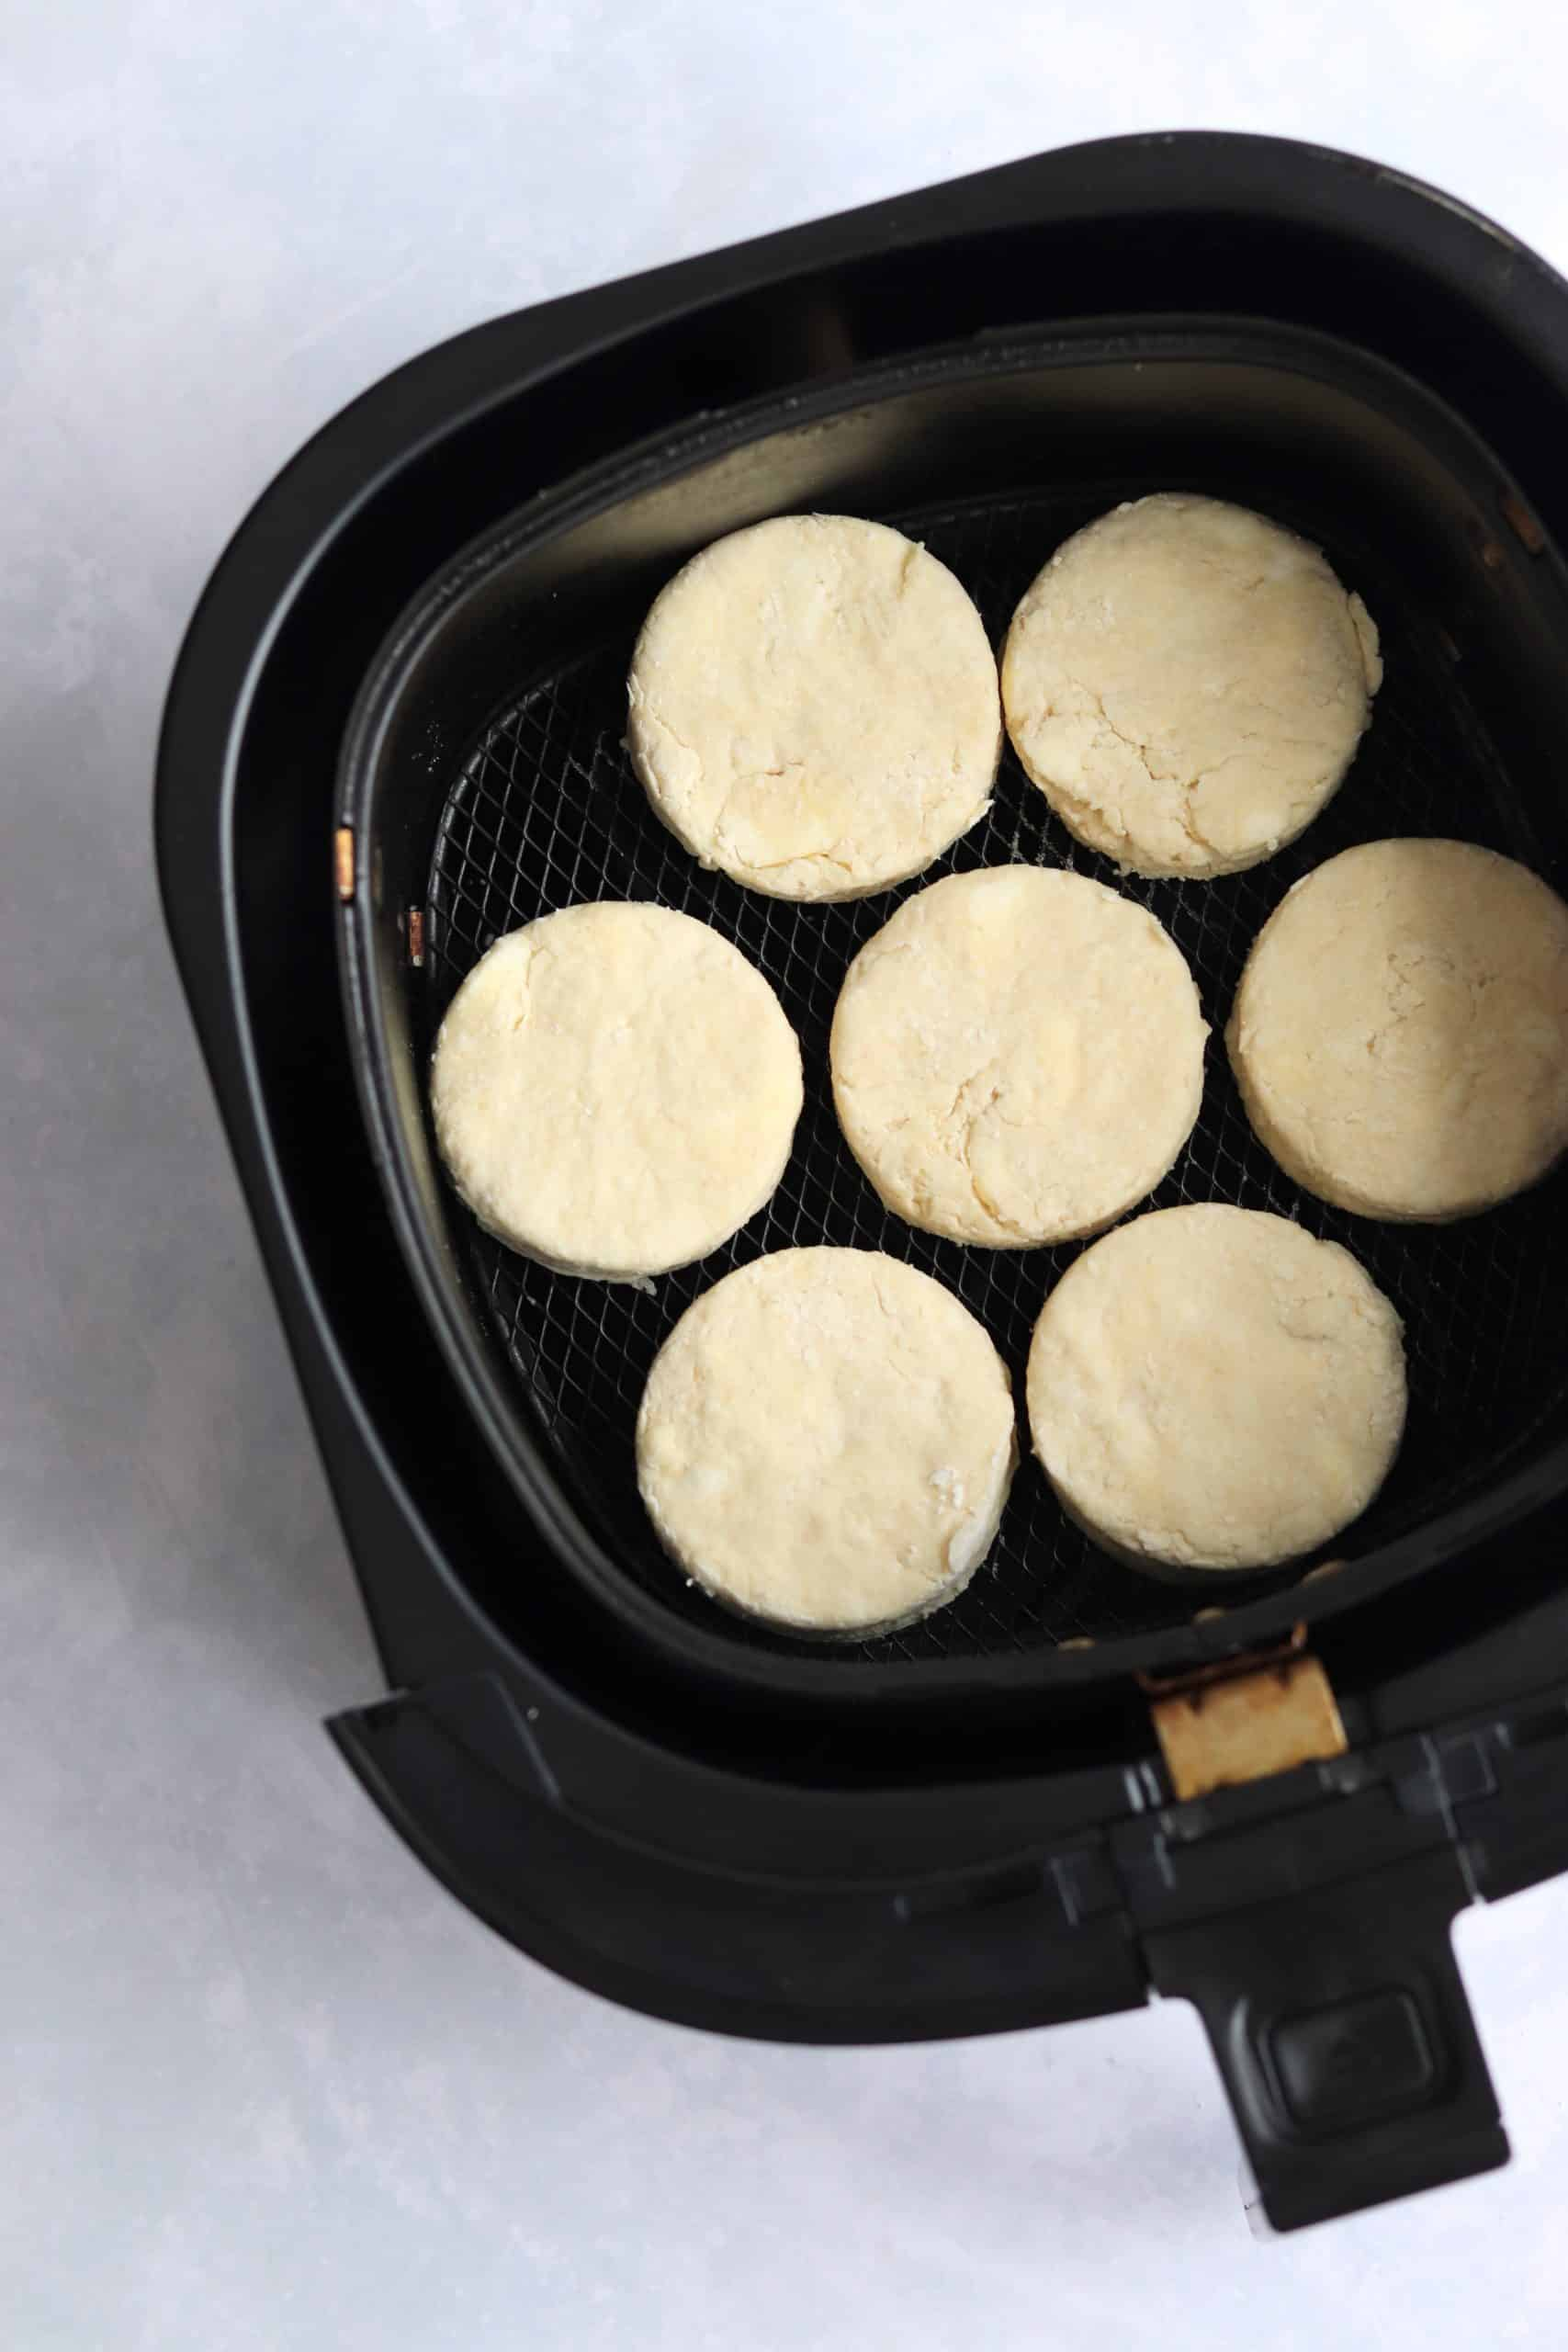 Cut biscuits added to air fryer basket.